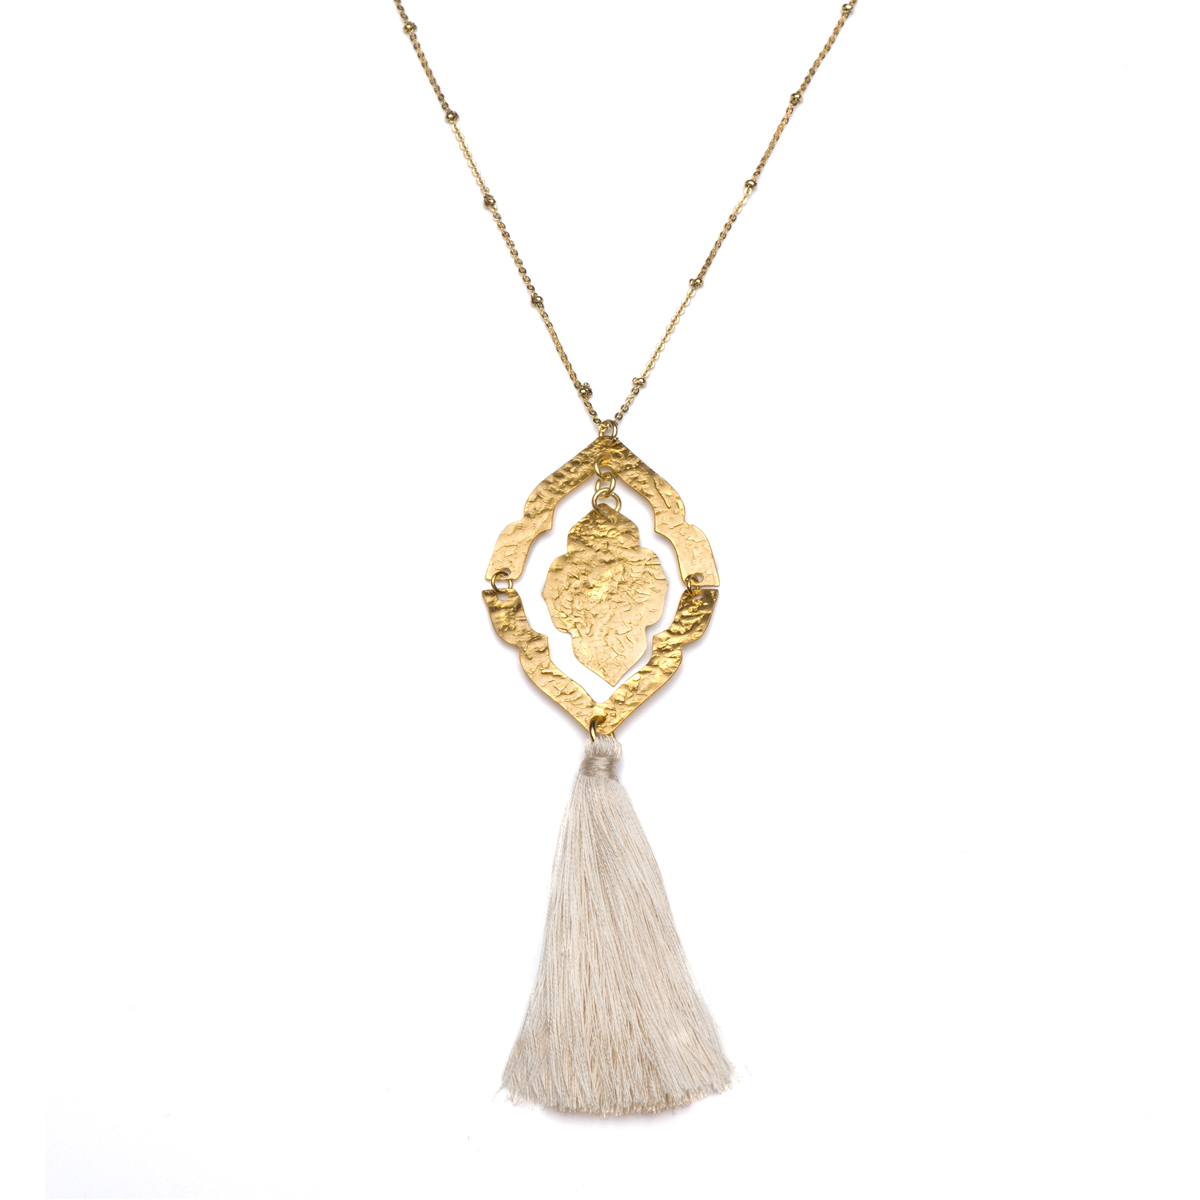 JM549_Nihira_Ashram_Window_Necklace_Gold.jpg